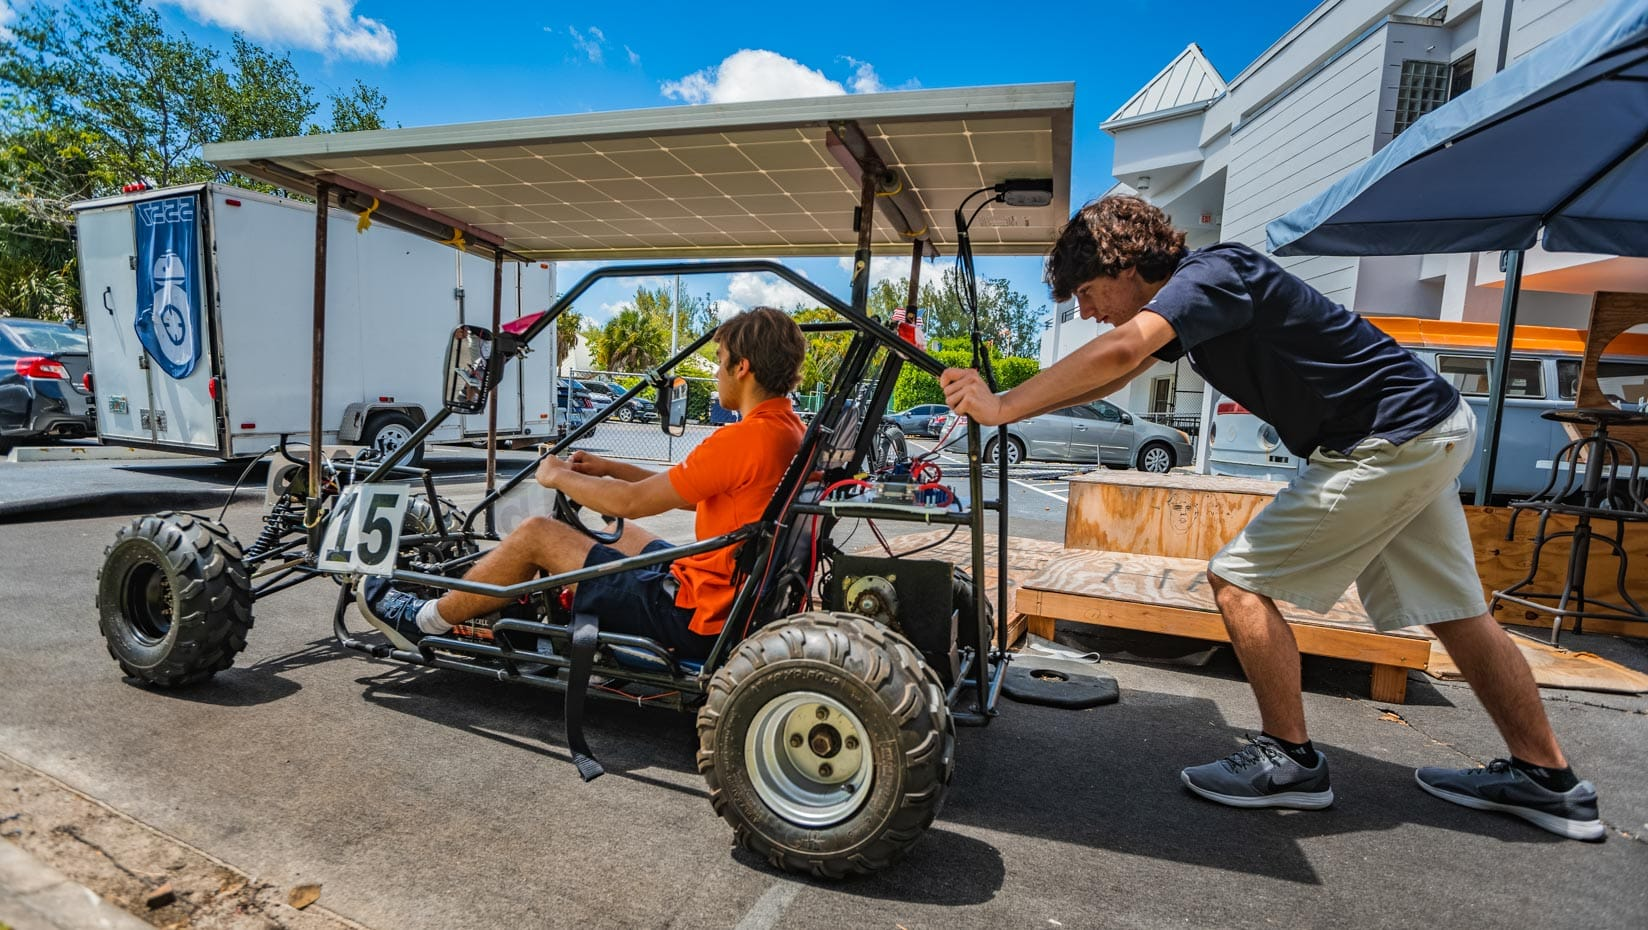 Two male students working on a solar vehicle project